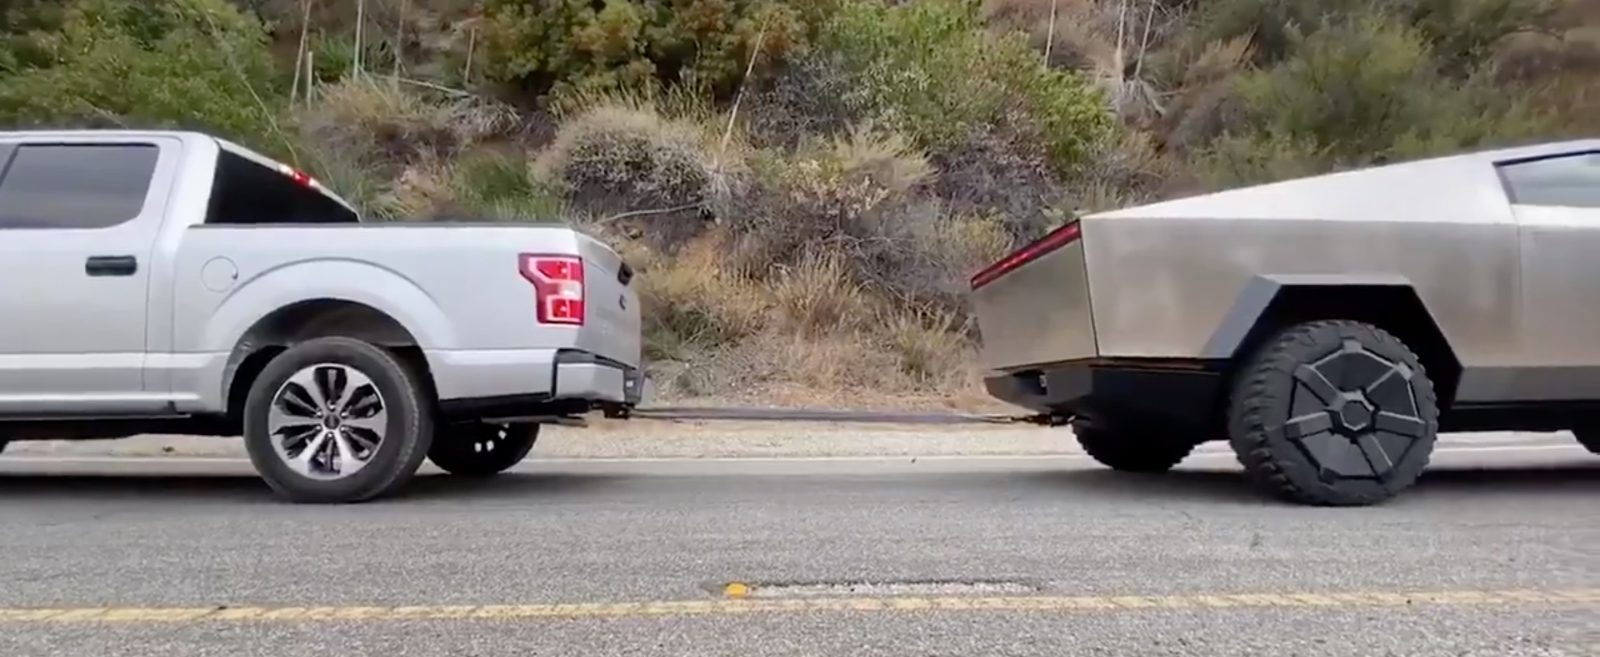 Tesla to redo Cybertruck vs. Ford F150 tug-of-war challenge after claims it wasn't fair